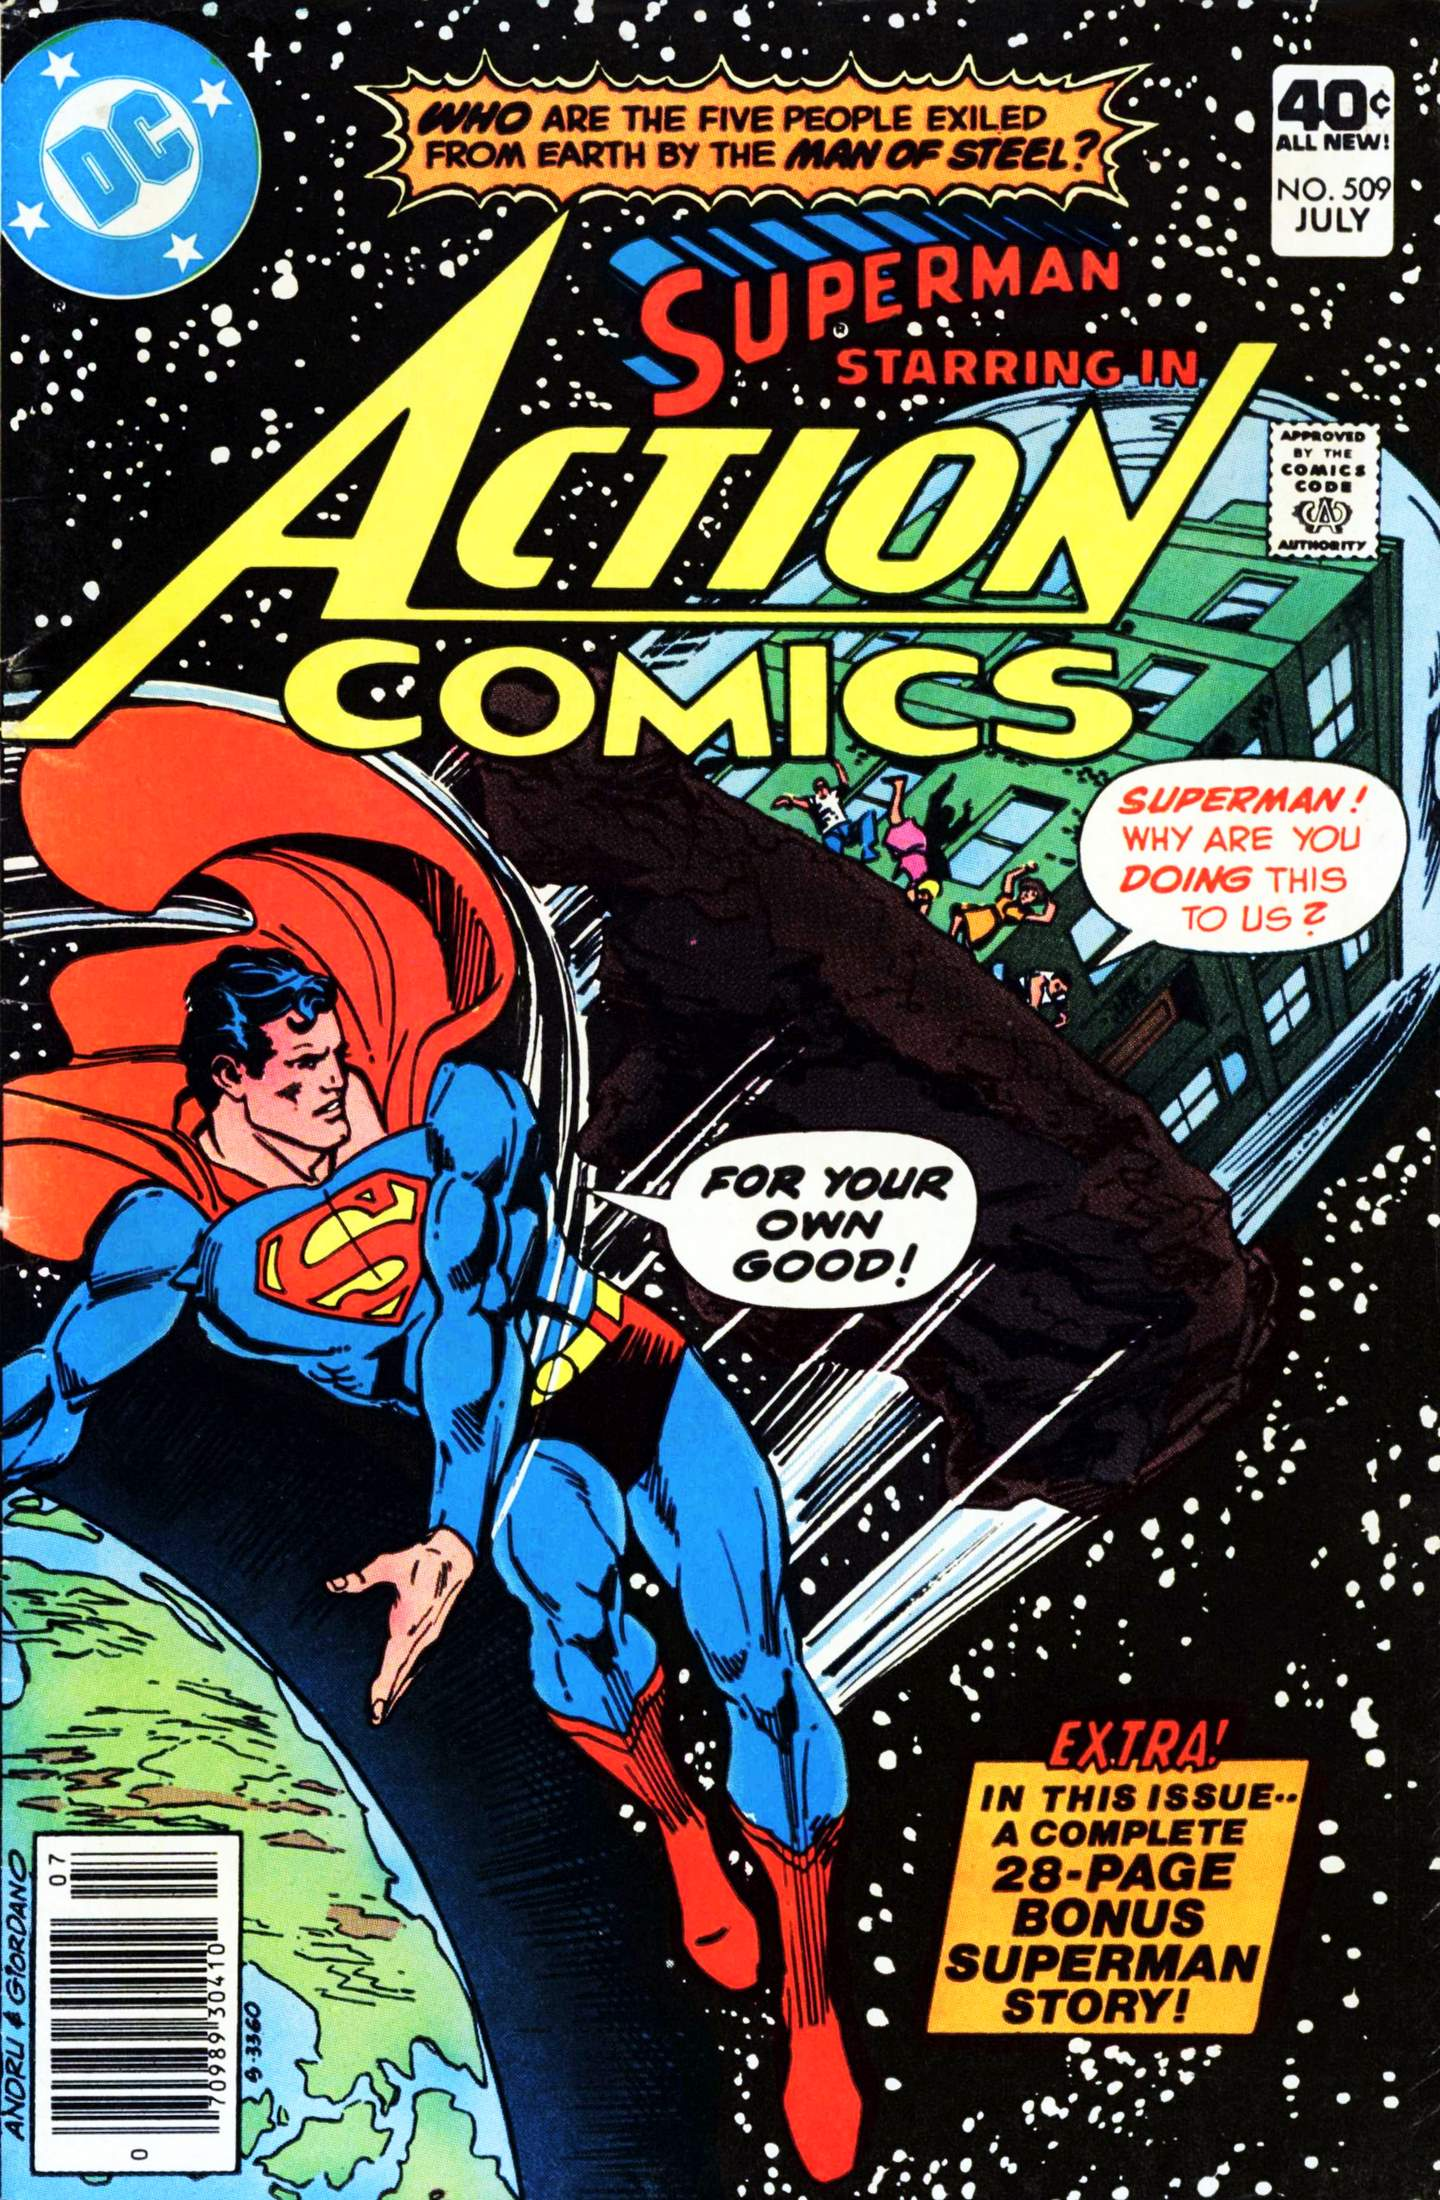 Read online Action Comics (1938) comic -  Issue #509 - 1